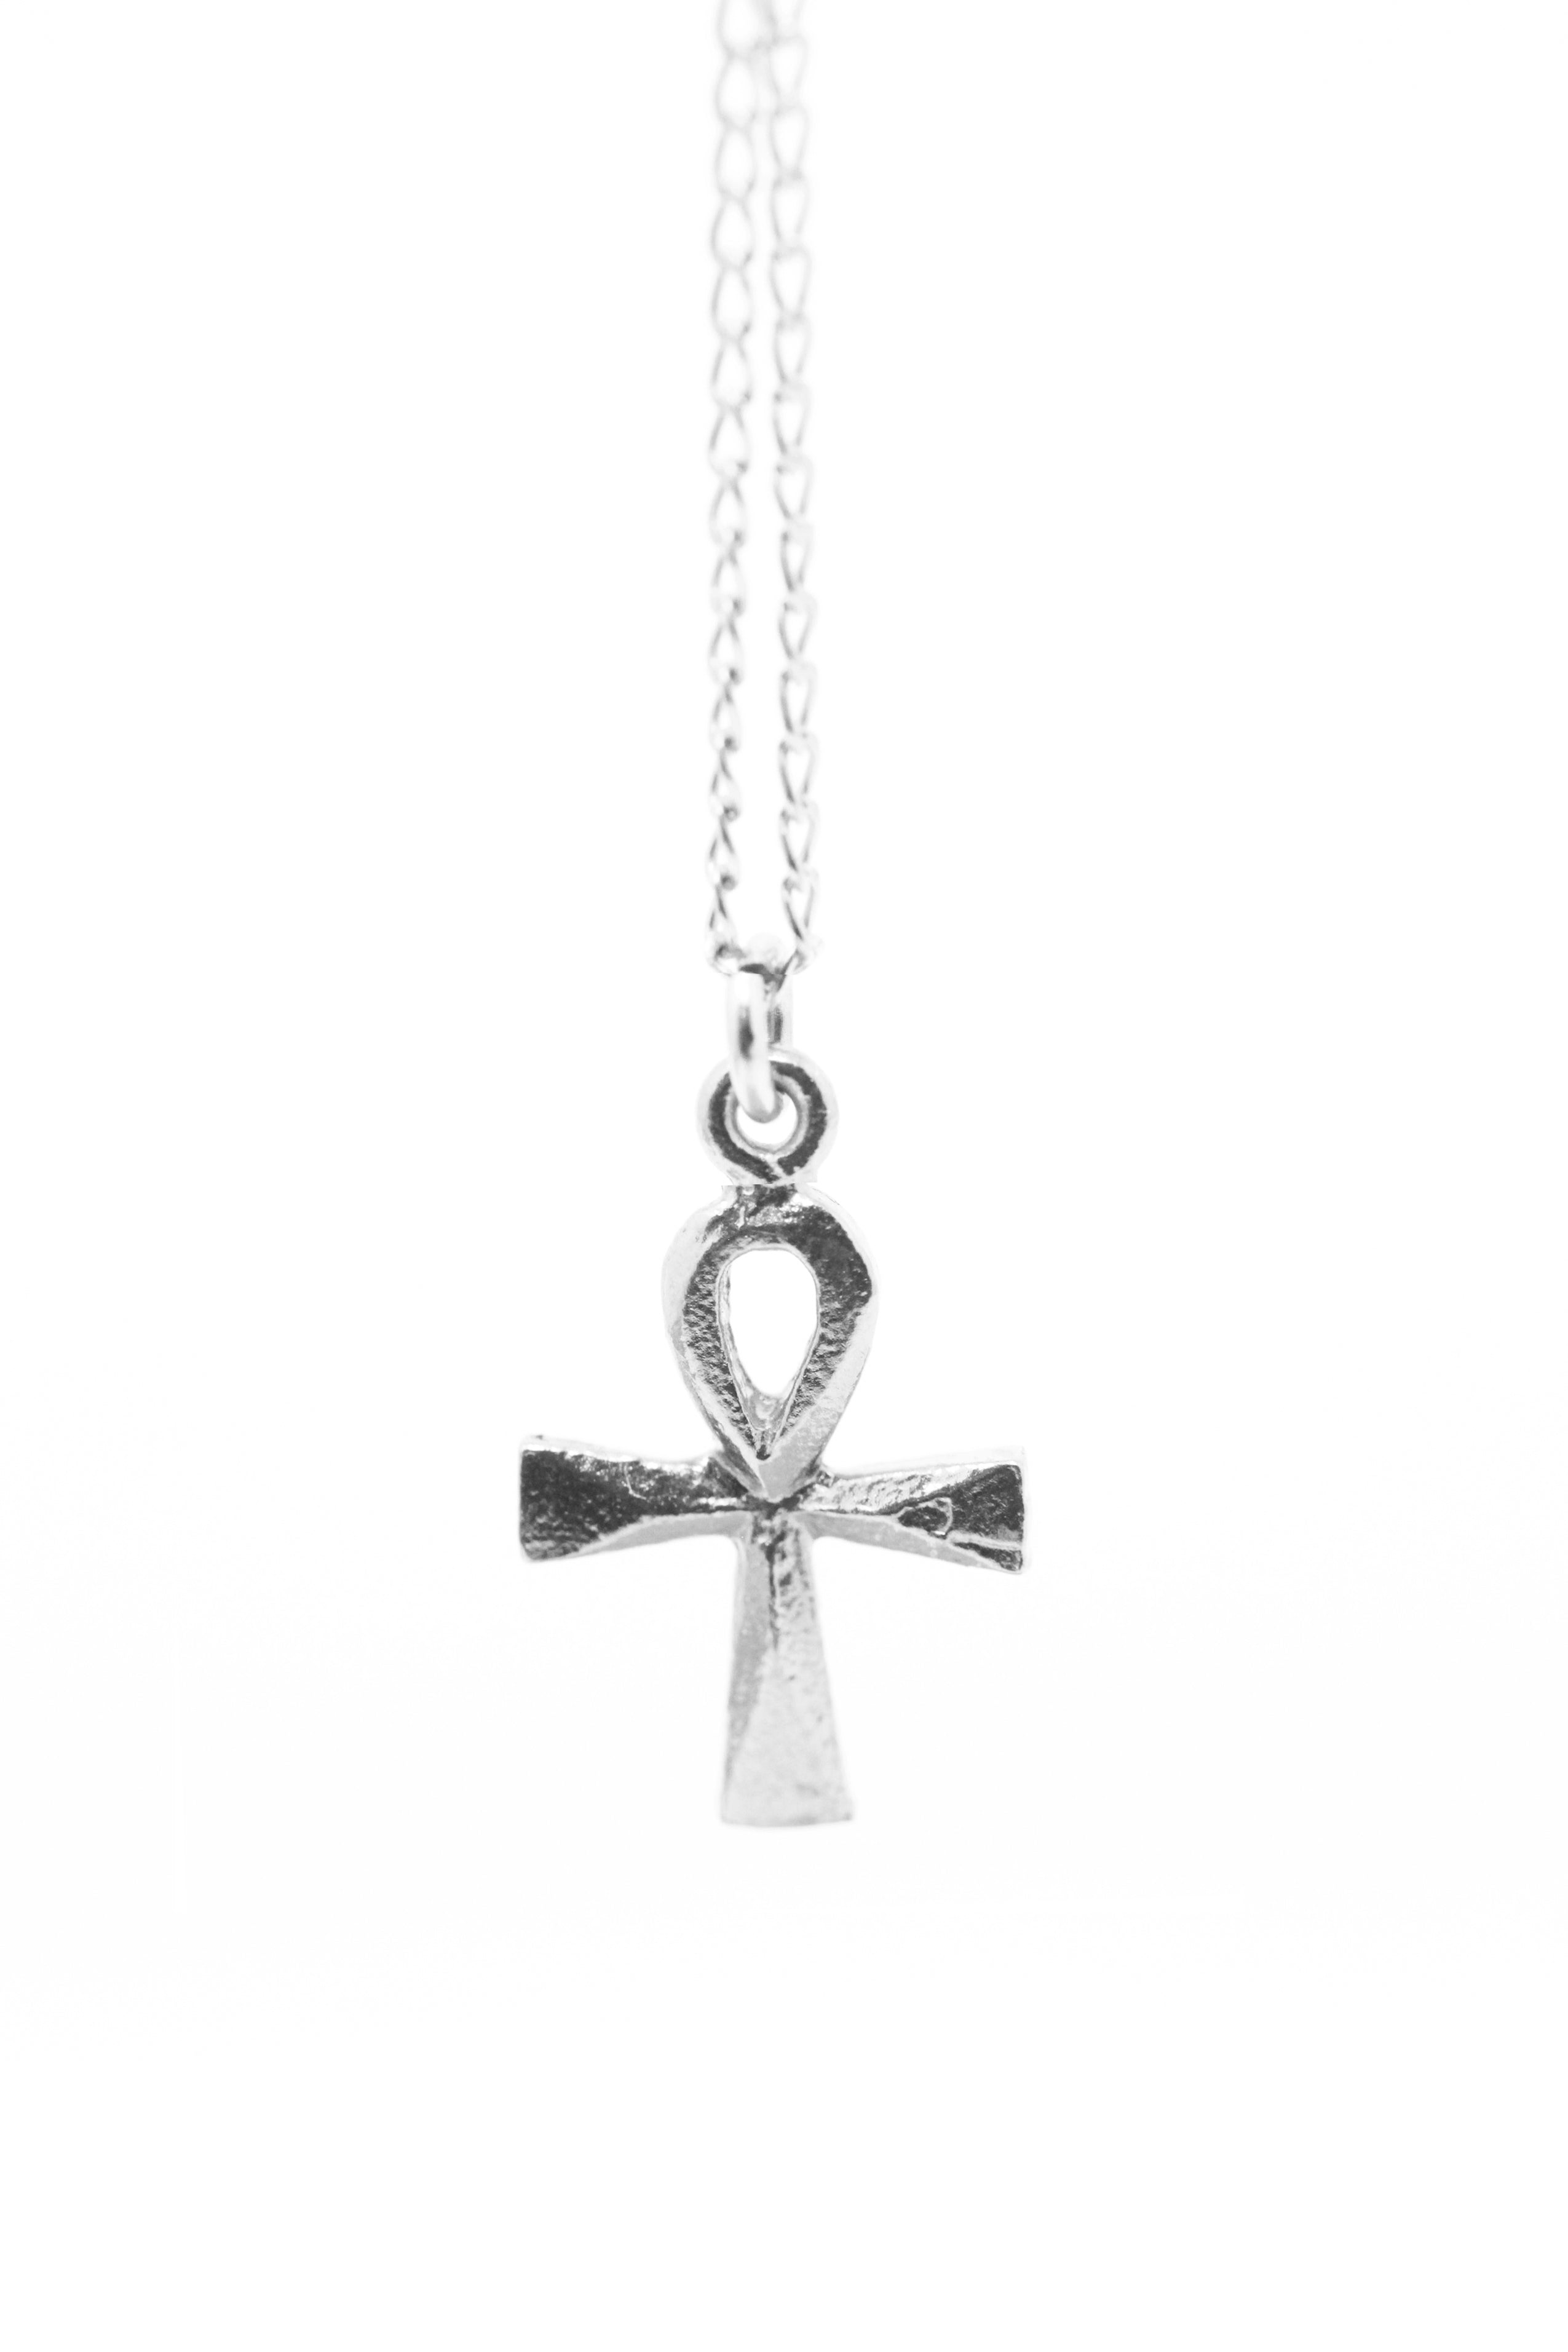 THE ANKH Necklace Sterling Silver